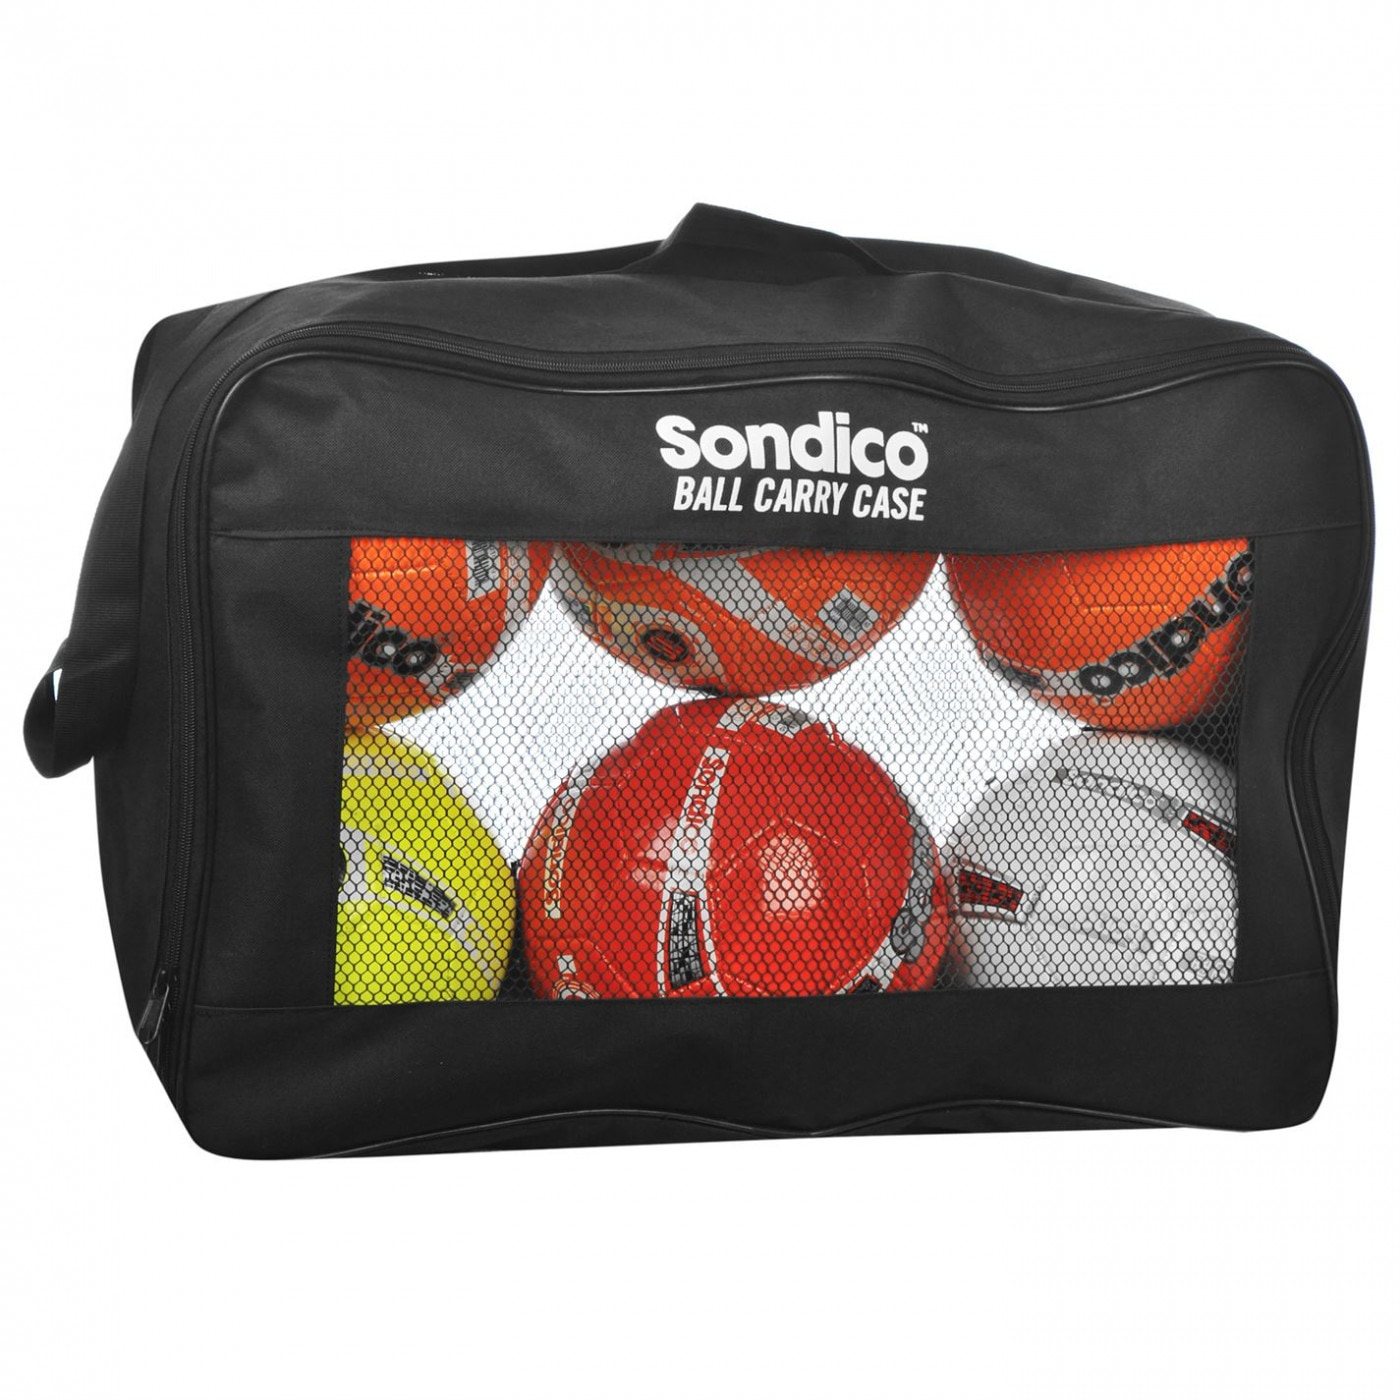 Sondico Ball Carry Case